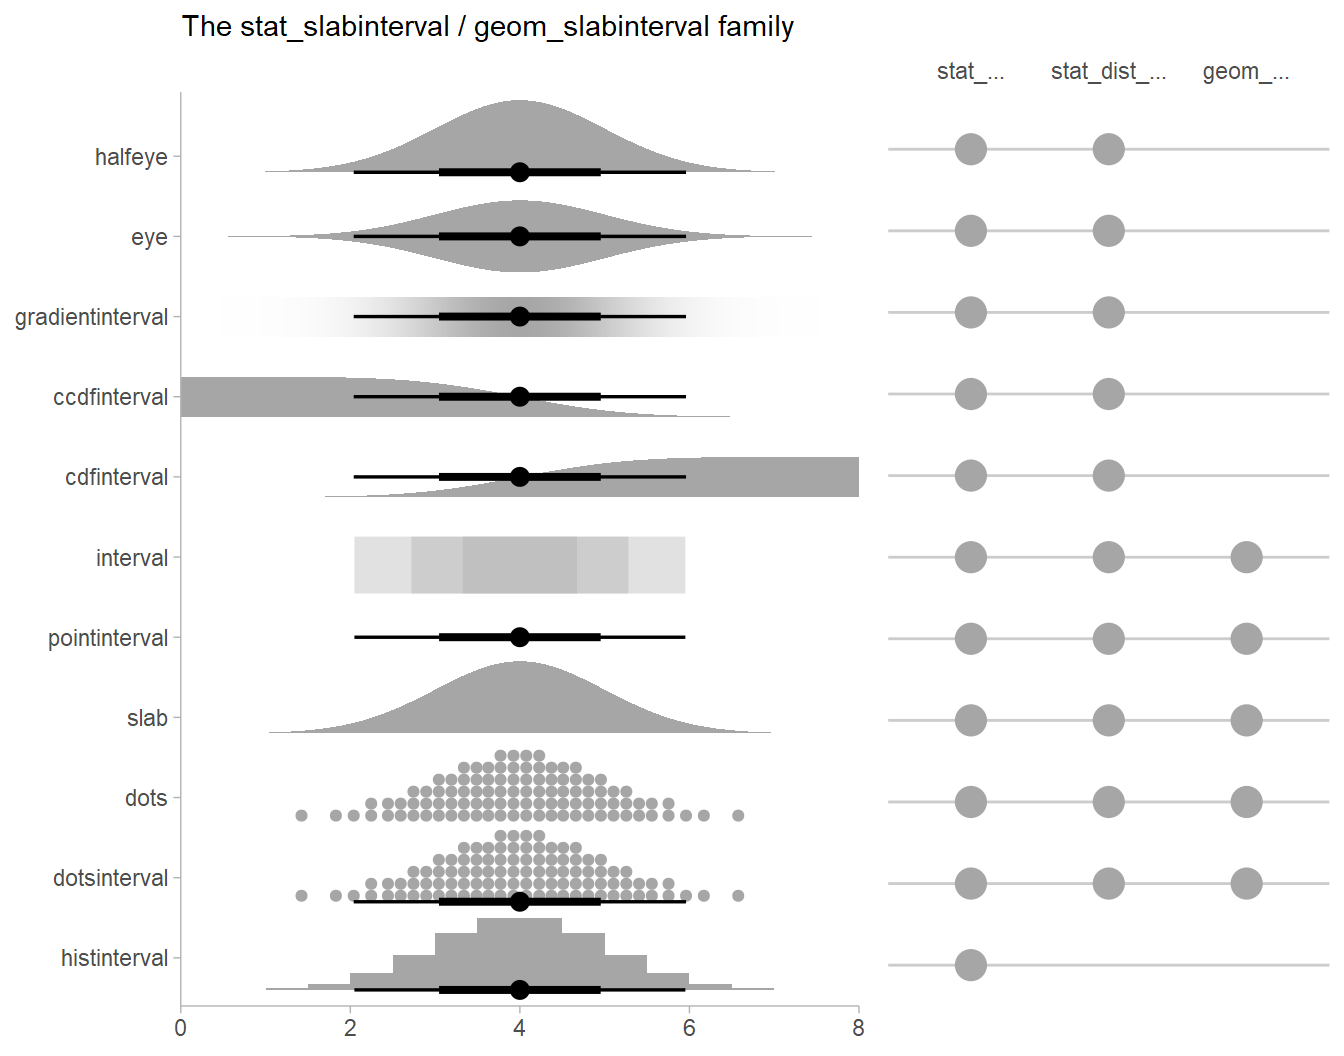 The slabinterval family of geoms and stats